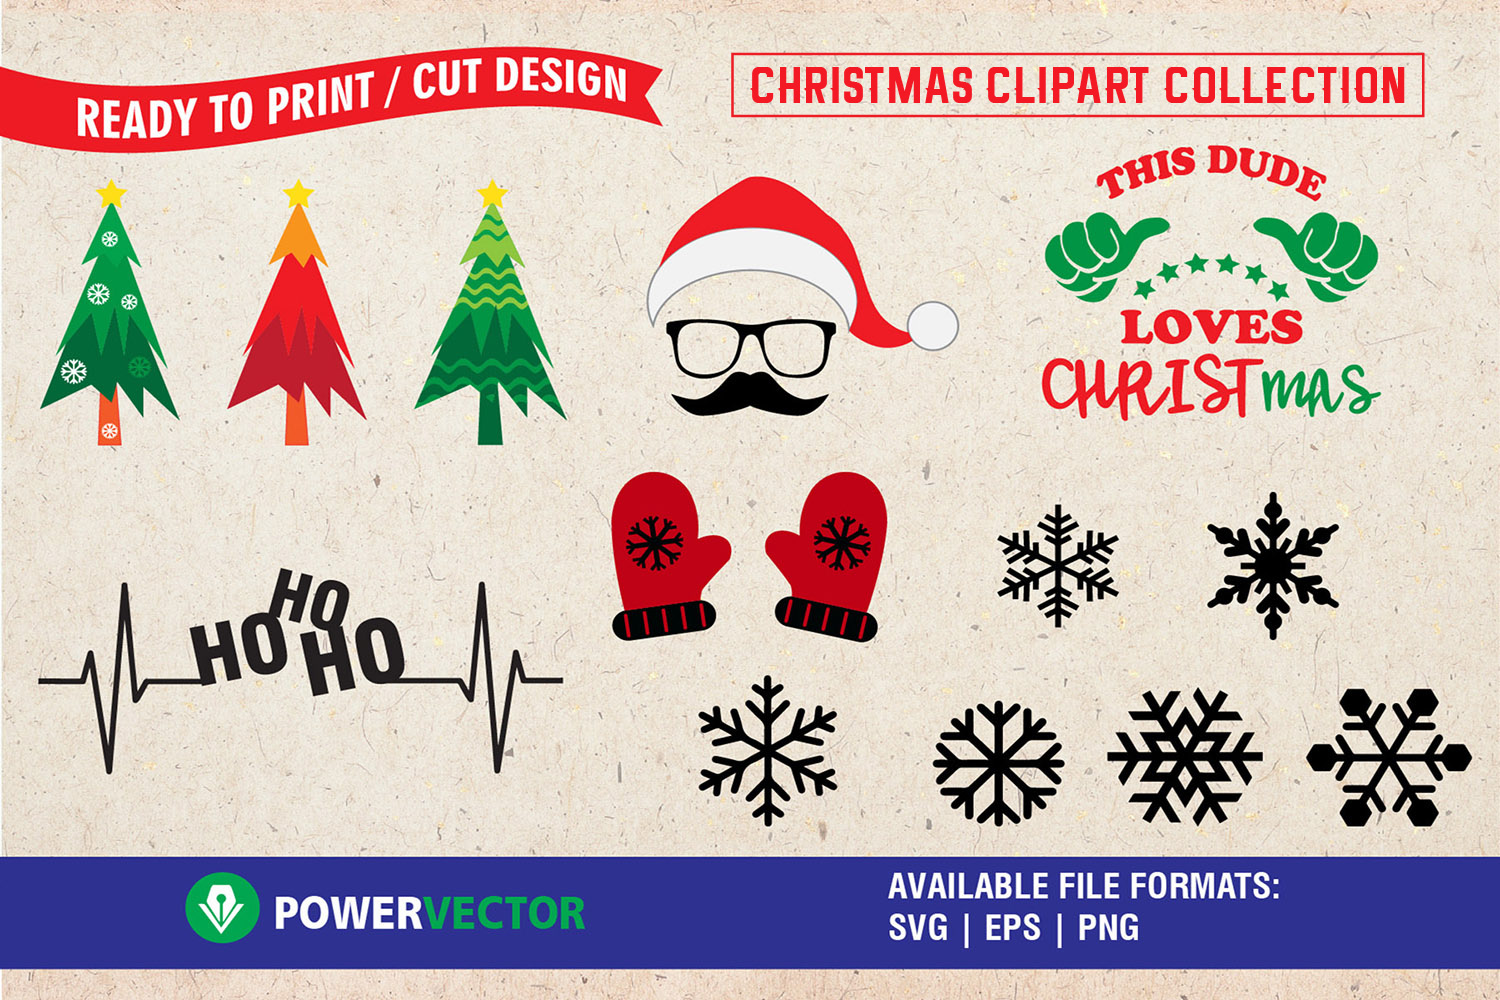 Download Free Christmas Clipart Collection Graphic By Powervector Creative for Cricut Explore, Silhouette and other cutting machines.